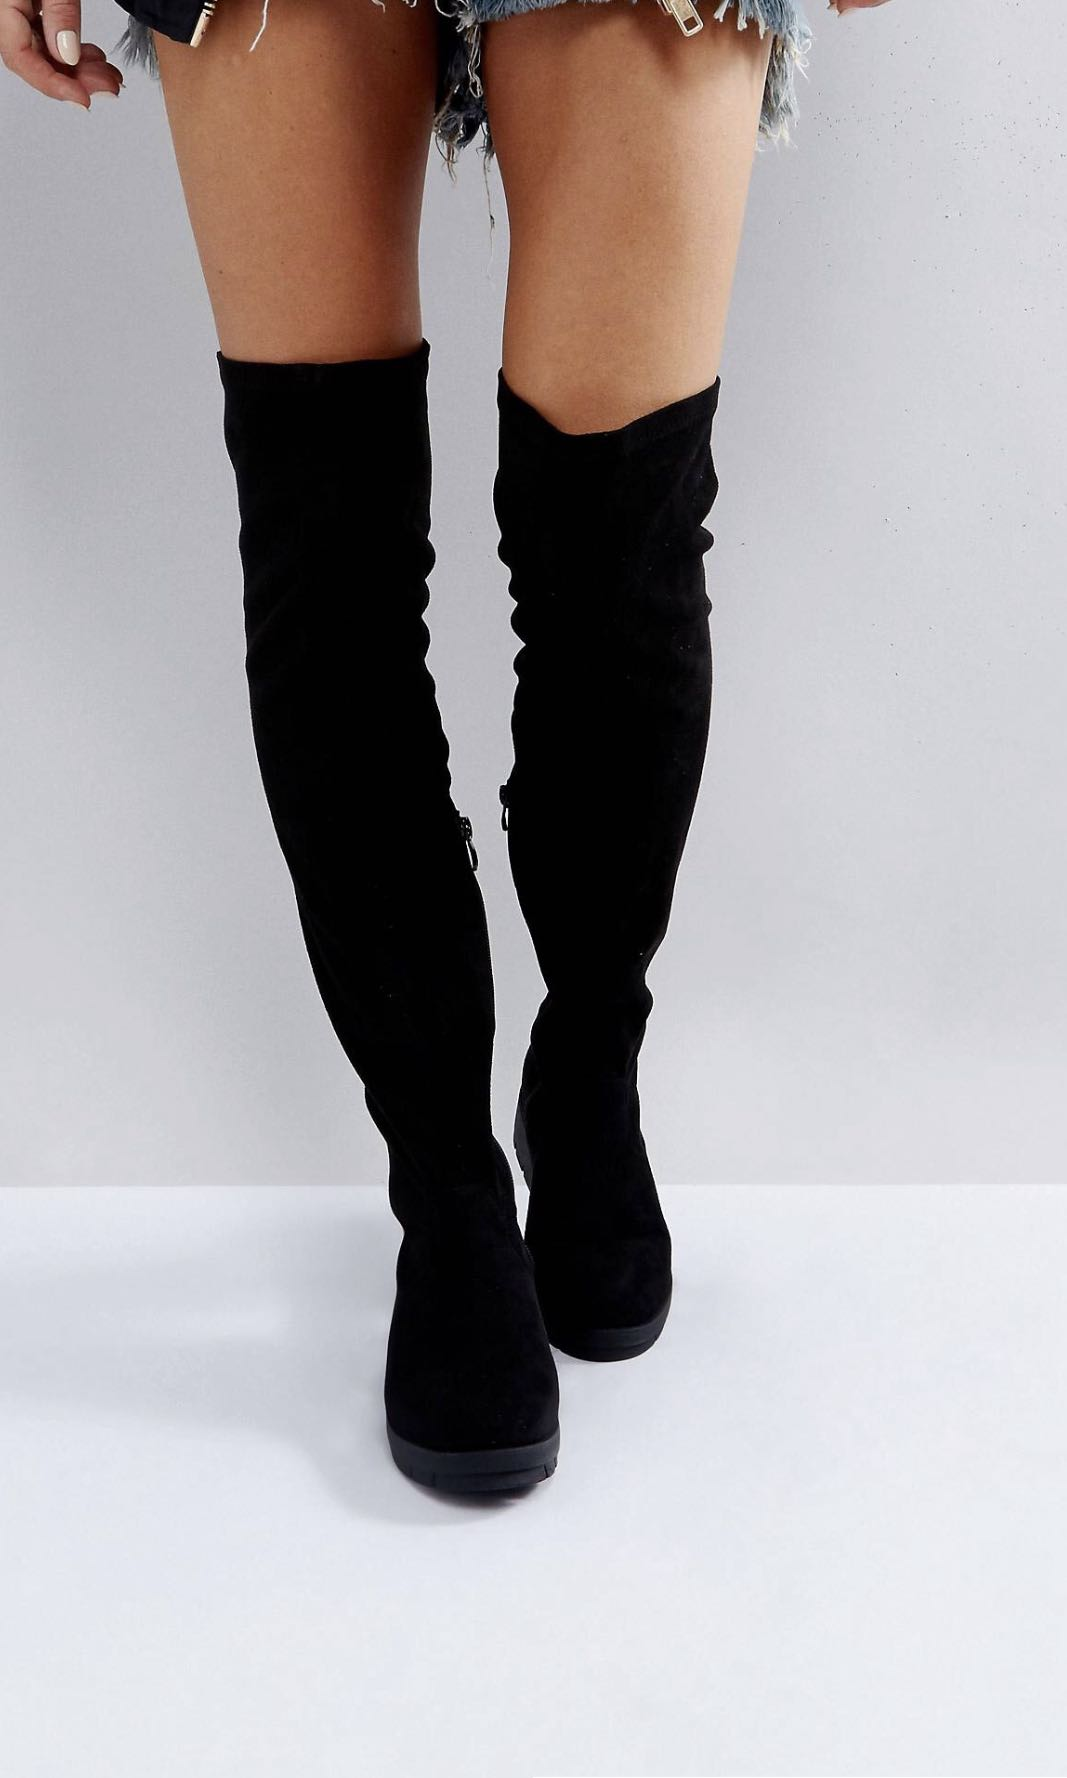 cdfcdacf232 Asos Truffle Collection Stretch Over Knee Boots